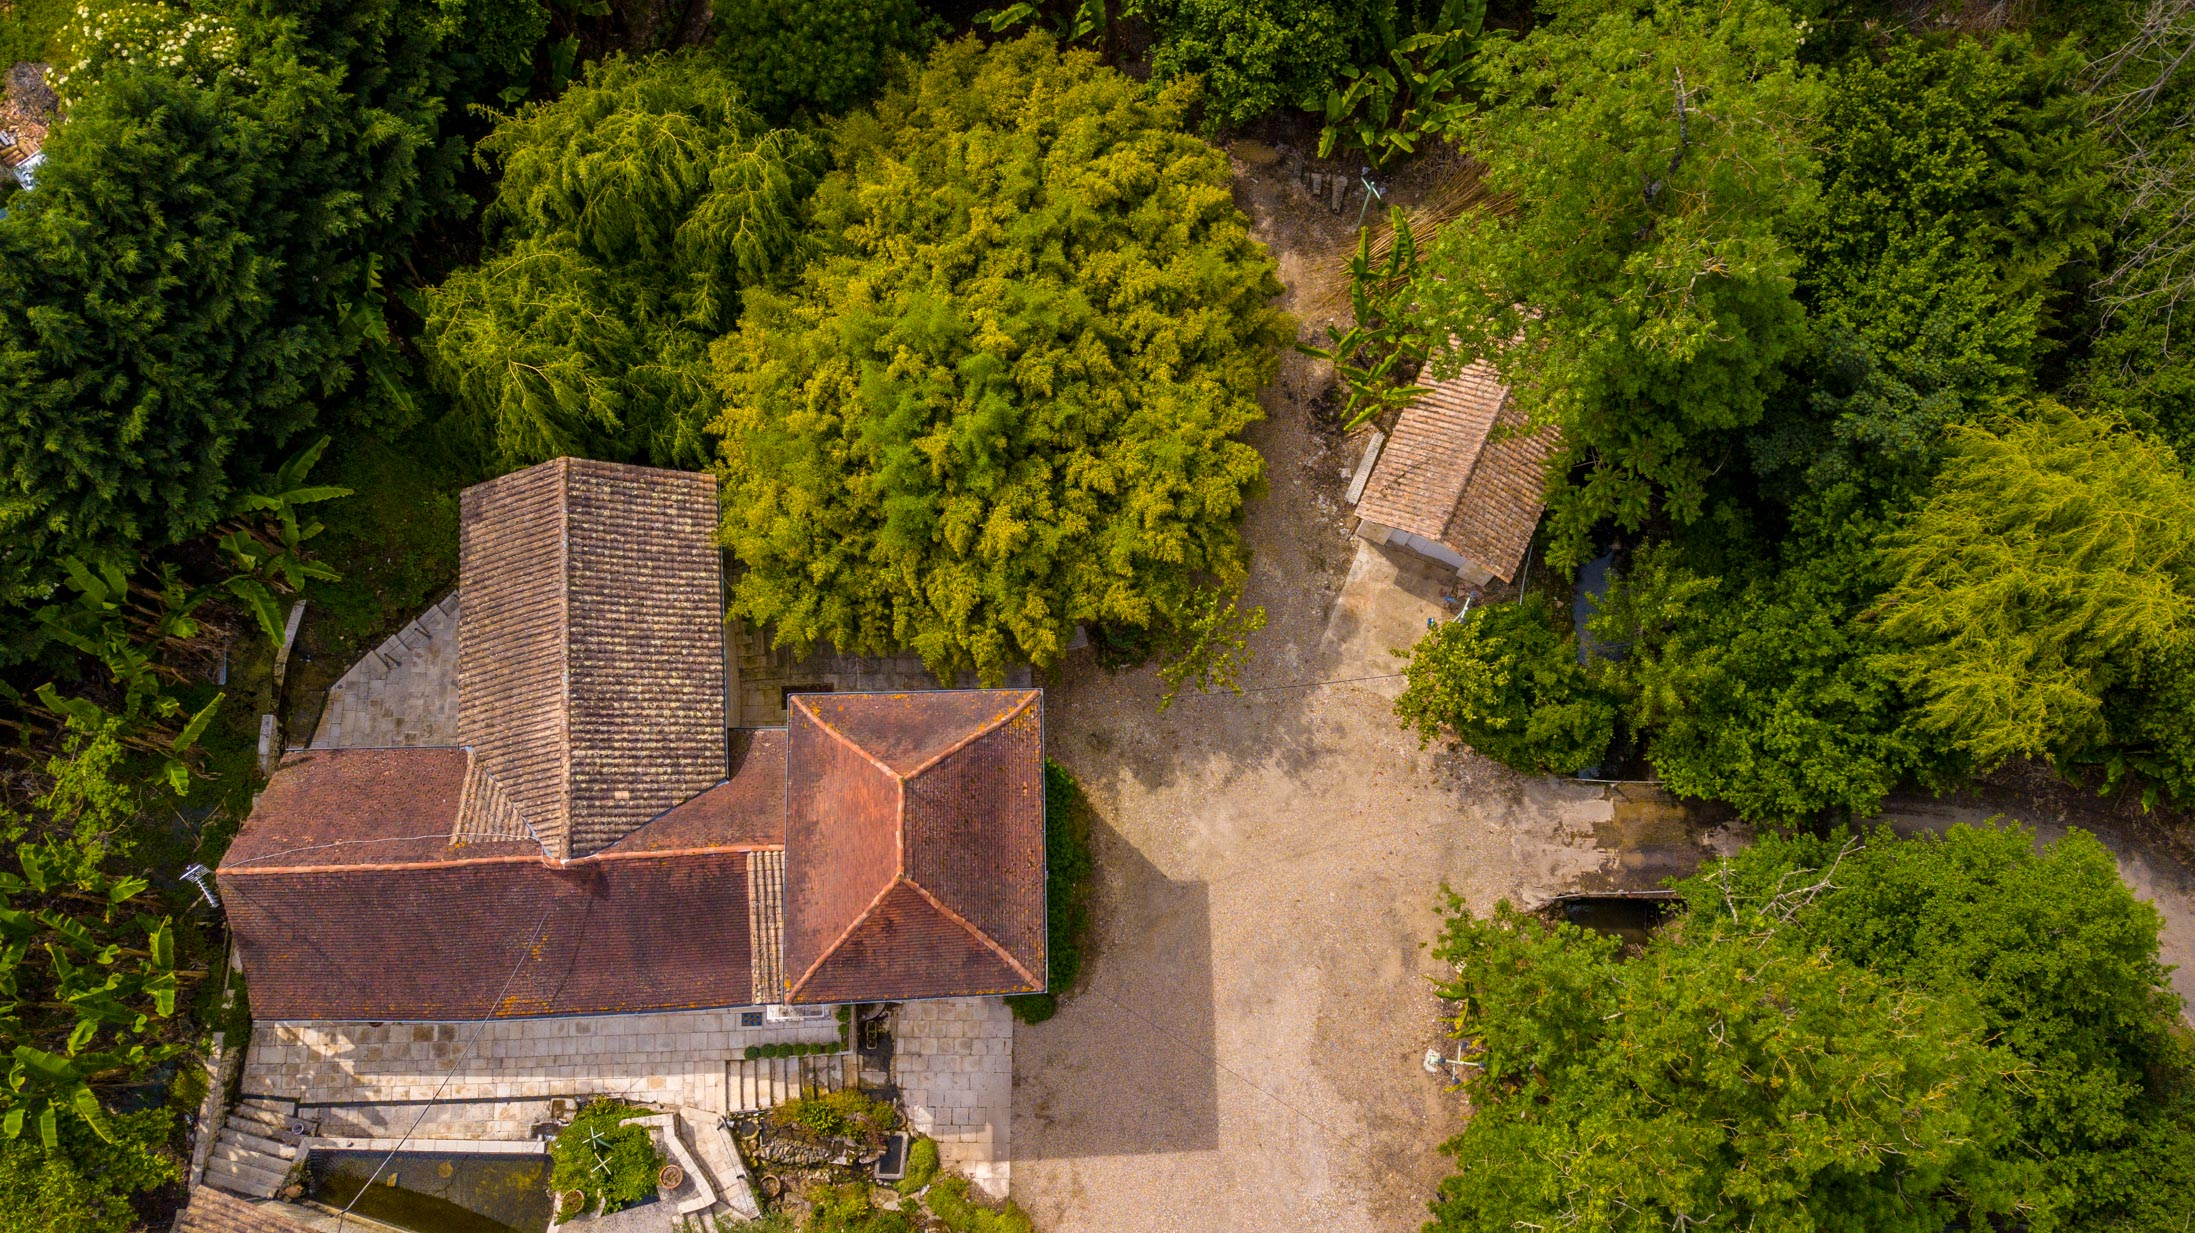 Moulin Chateau Rauly location bergerac Monbazillac